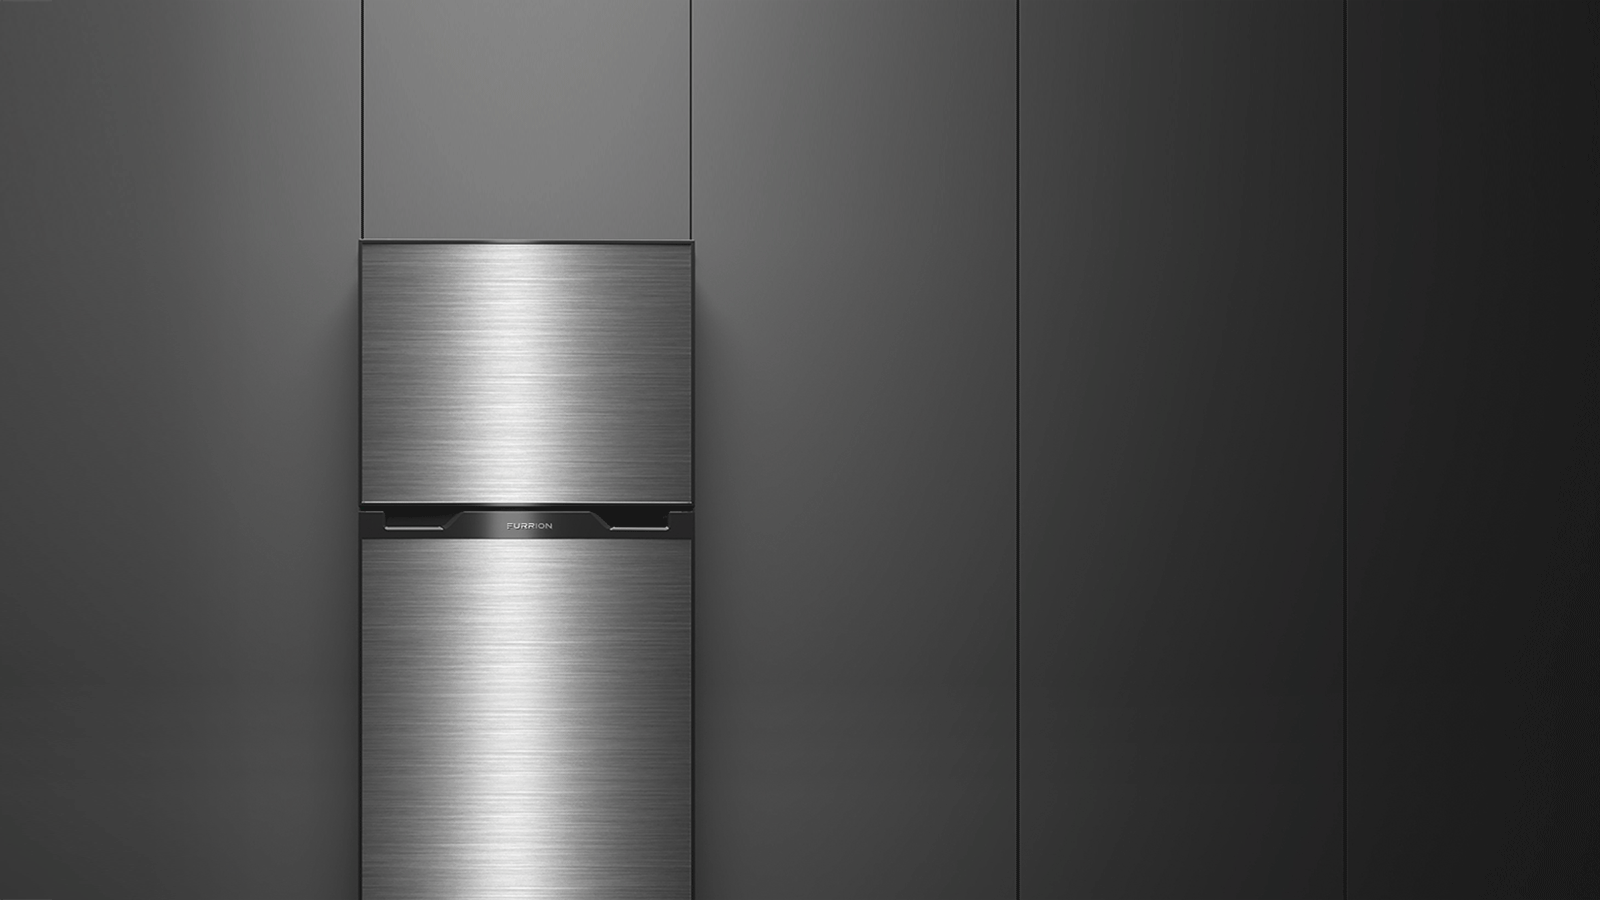 10 cu. ft. <br>12 Volt Built-In <br>Refrigerator